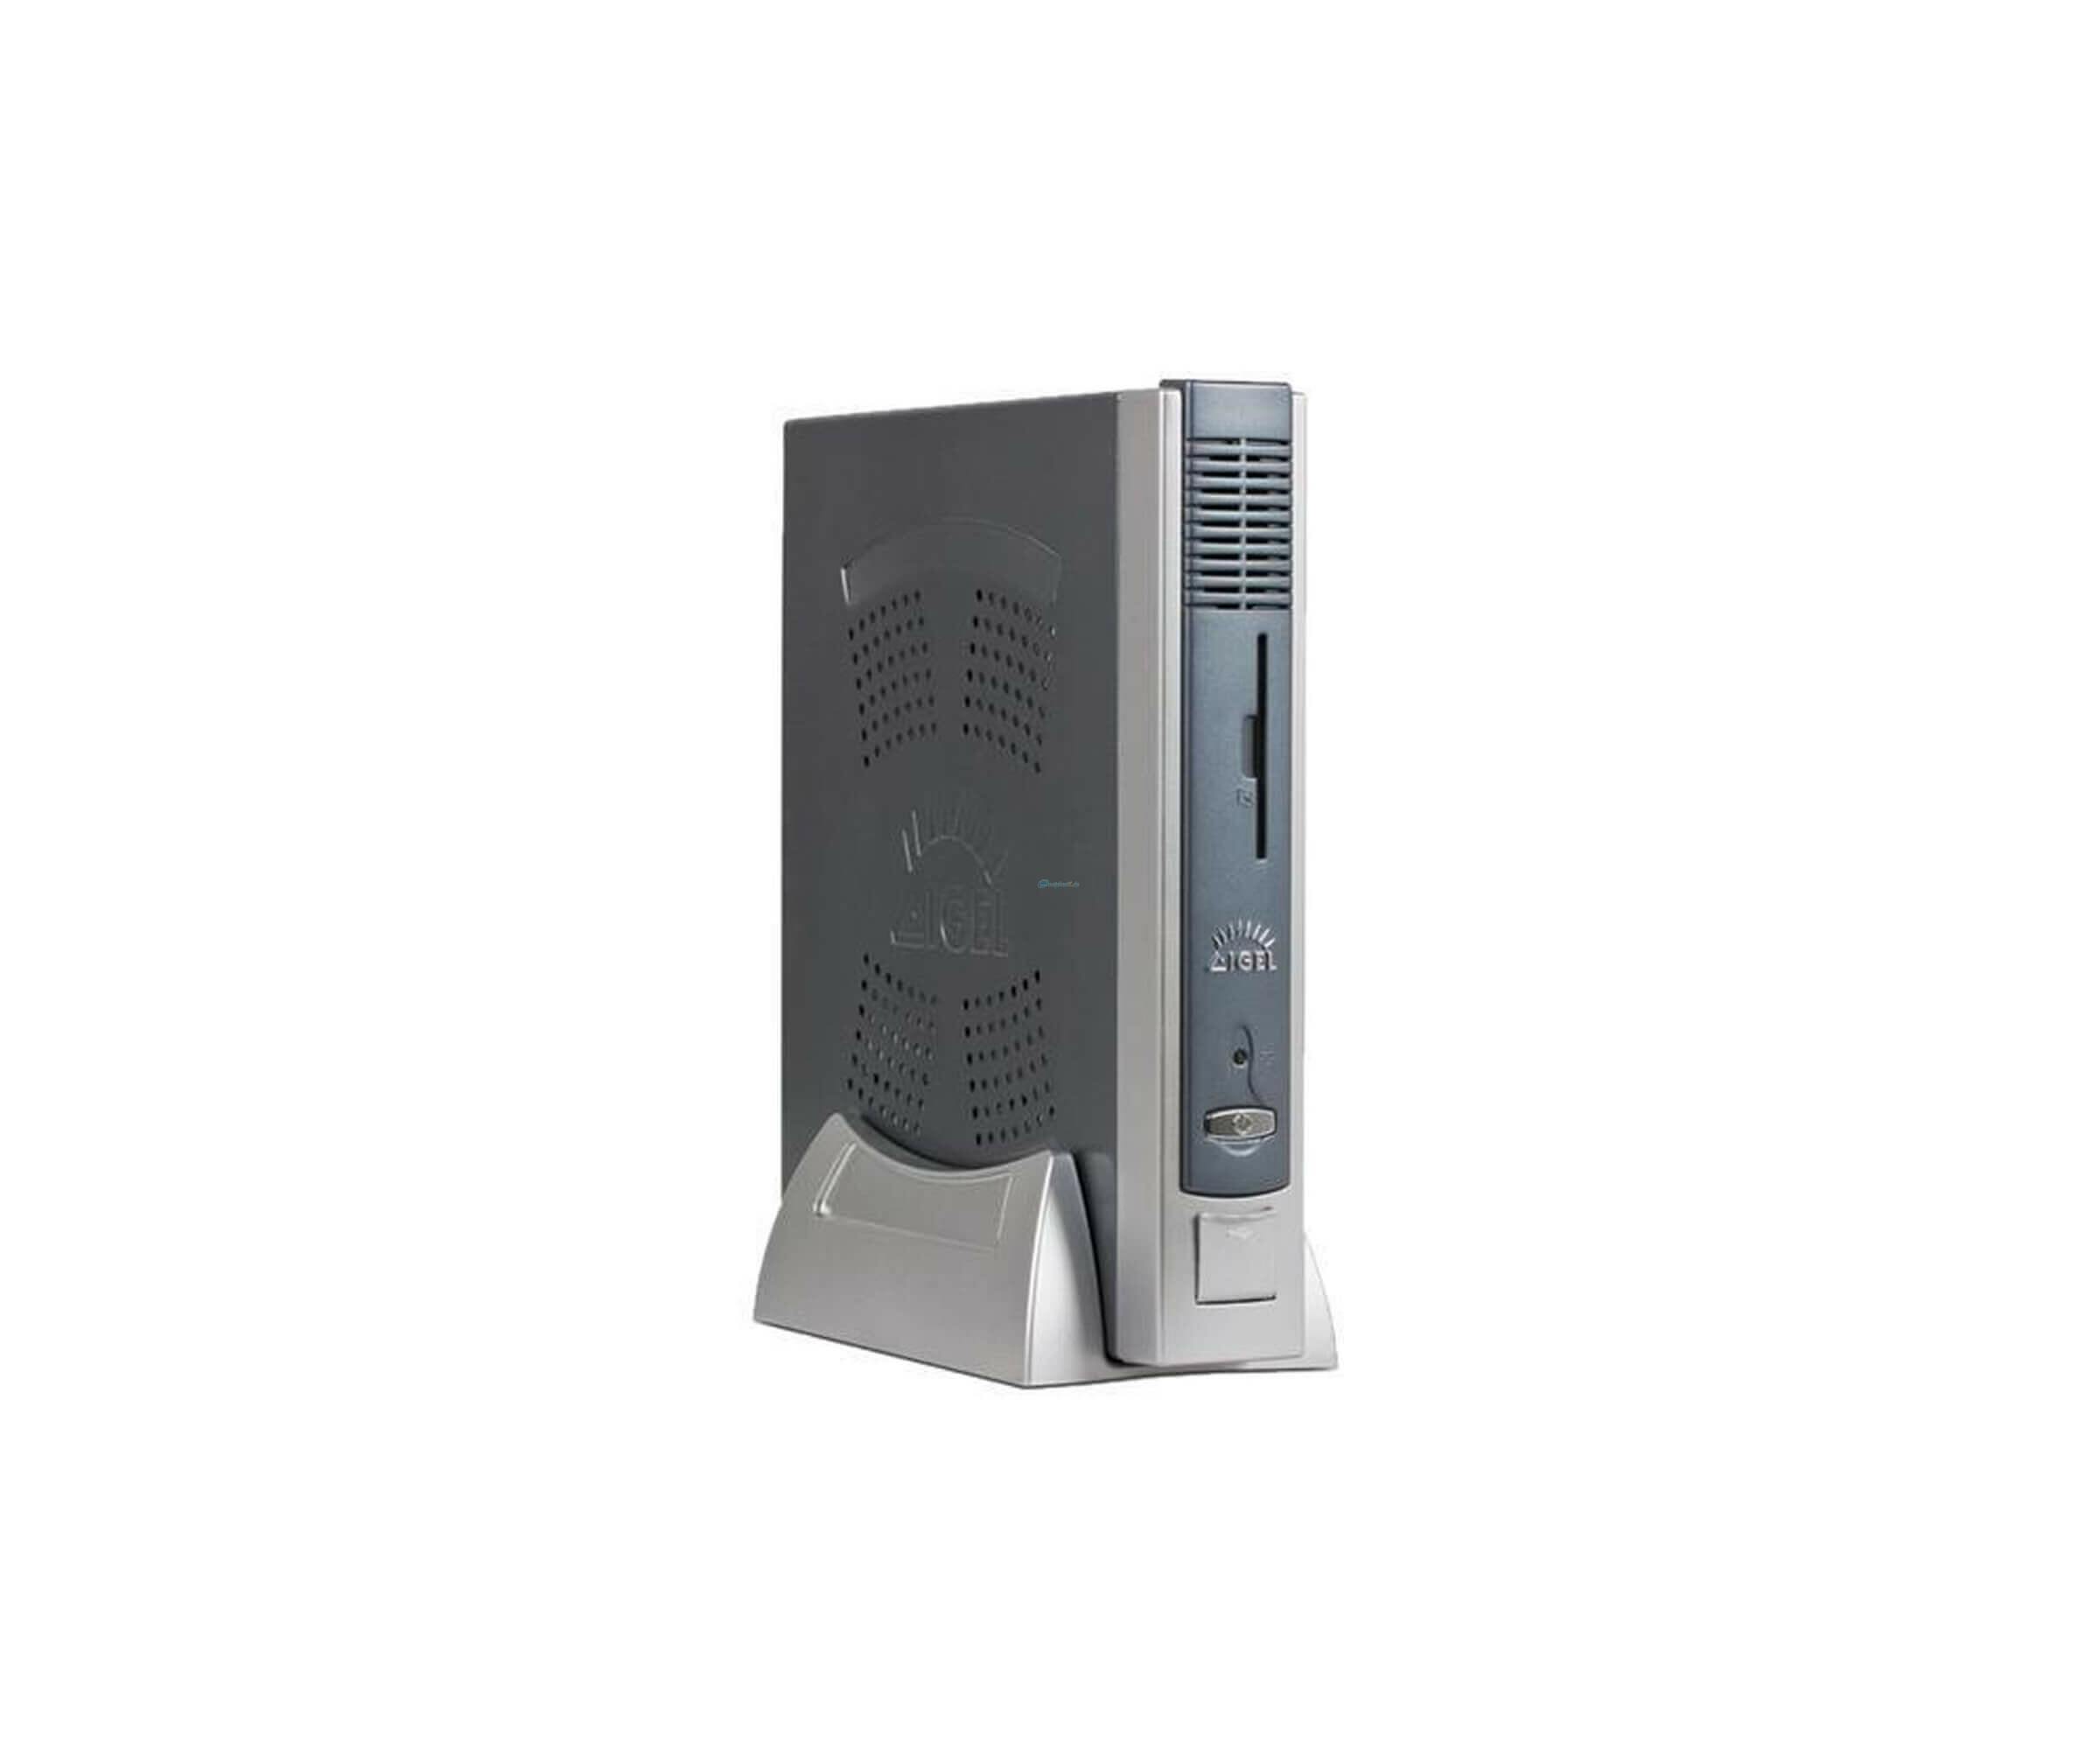 IGEL Thin Client IGEL-3210 XL Compact - Tower - 1 x Eden 600 MHz - RAM 256 MB - Gebraucht